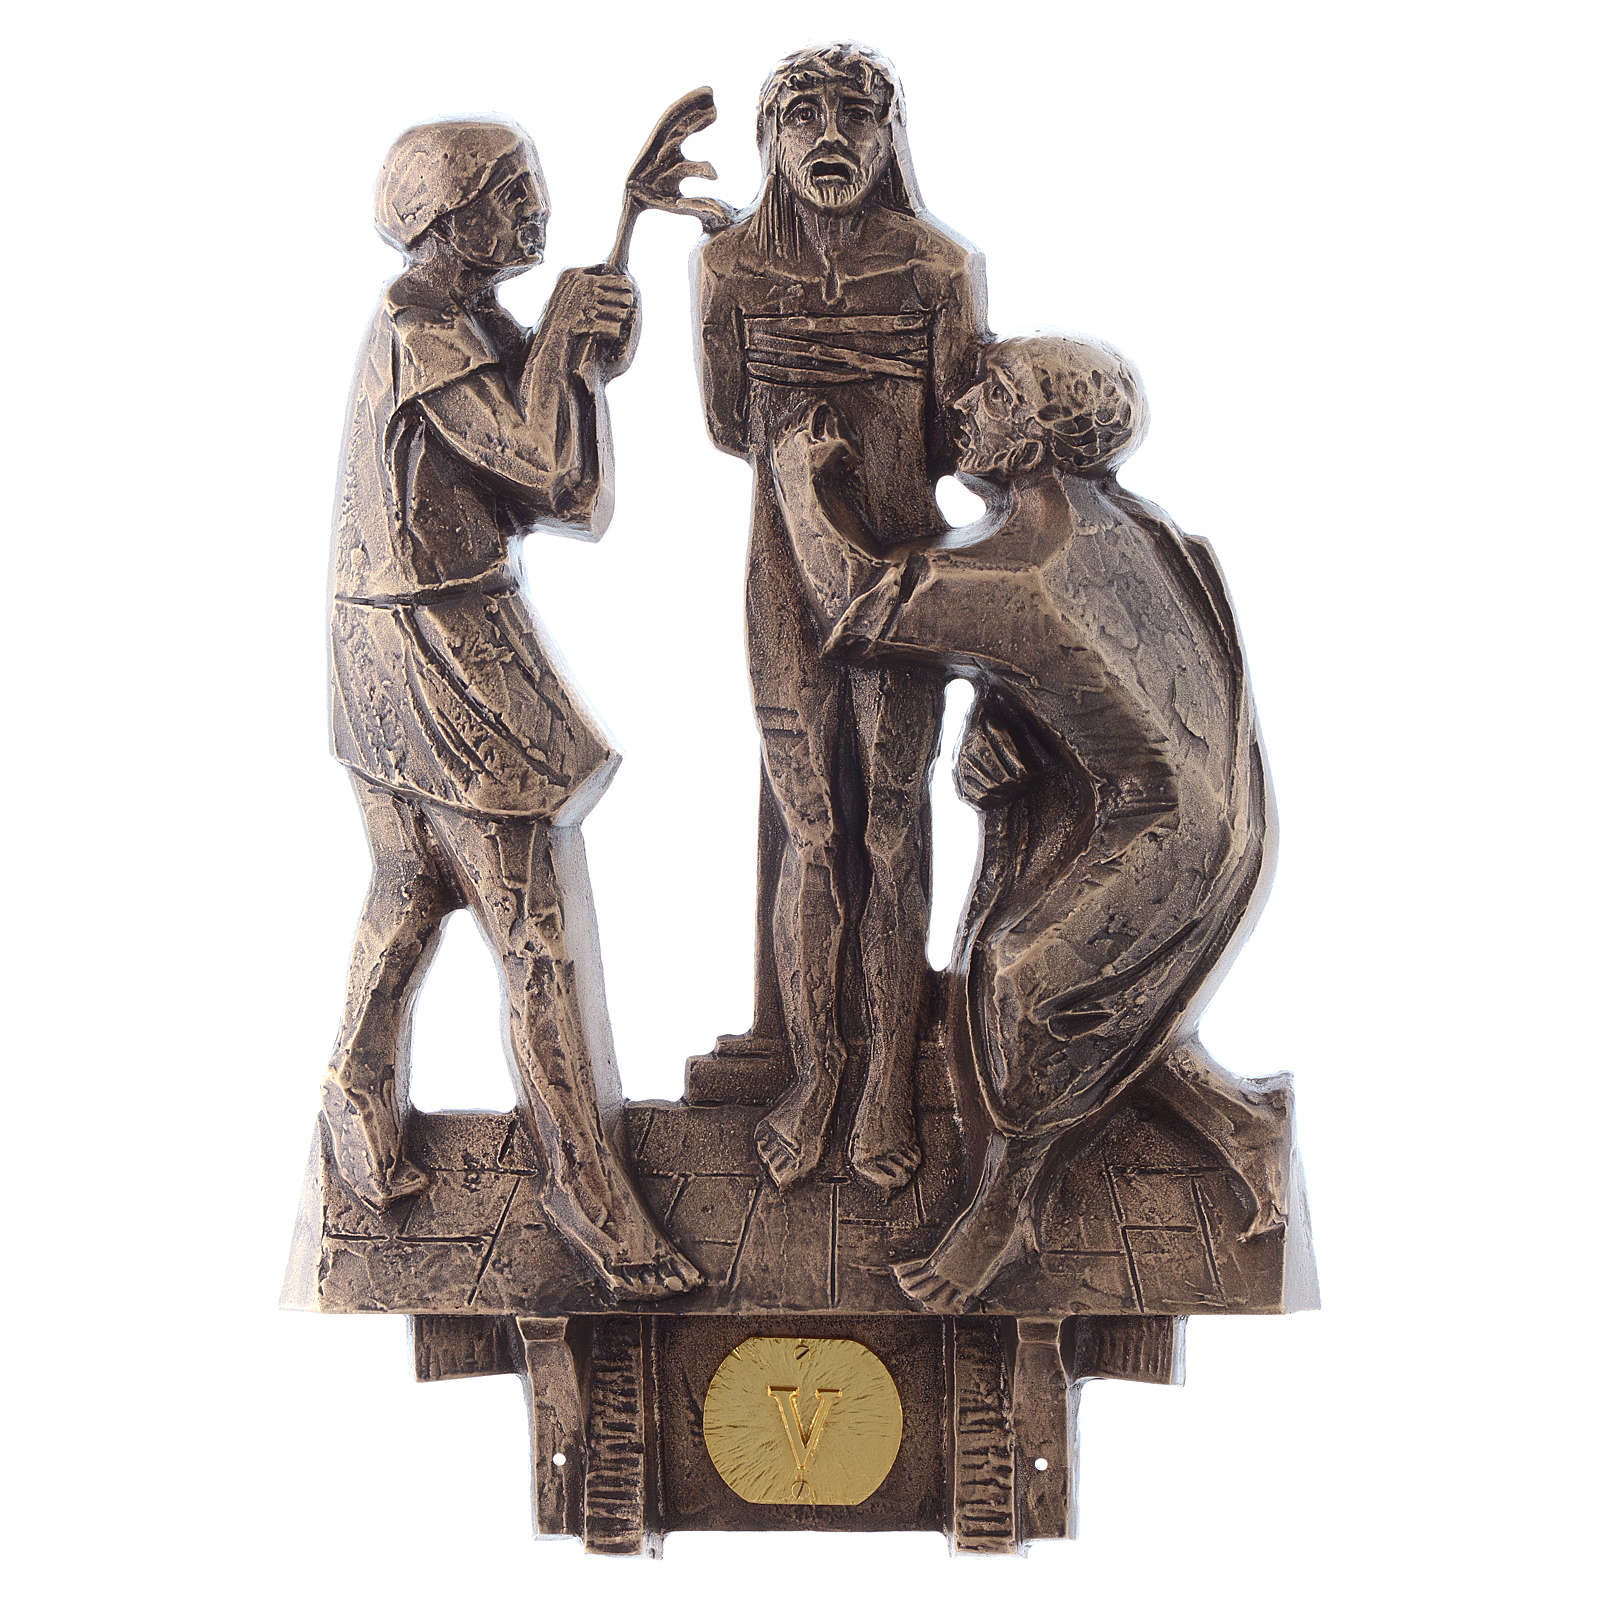 Stations of the Cross in bronze, 14 stations 4